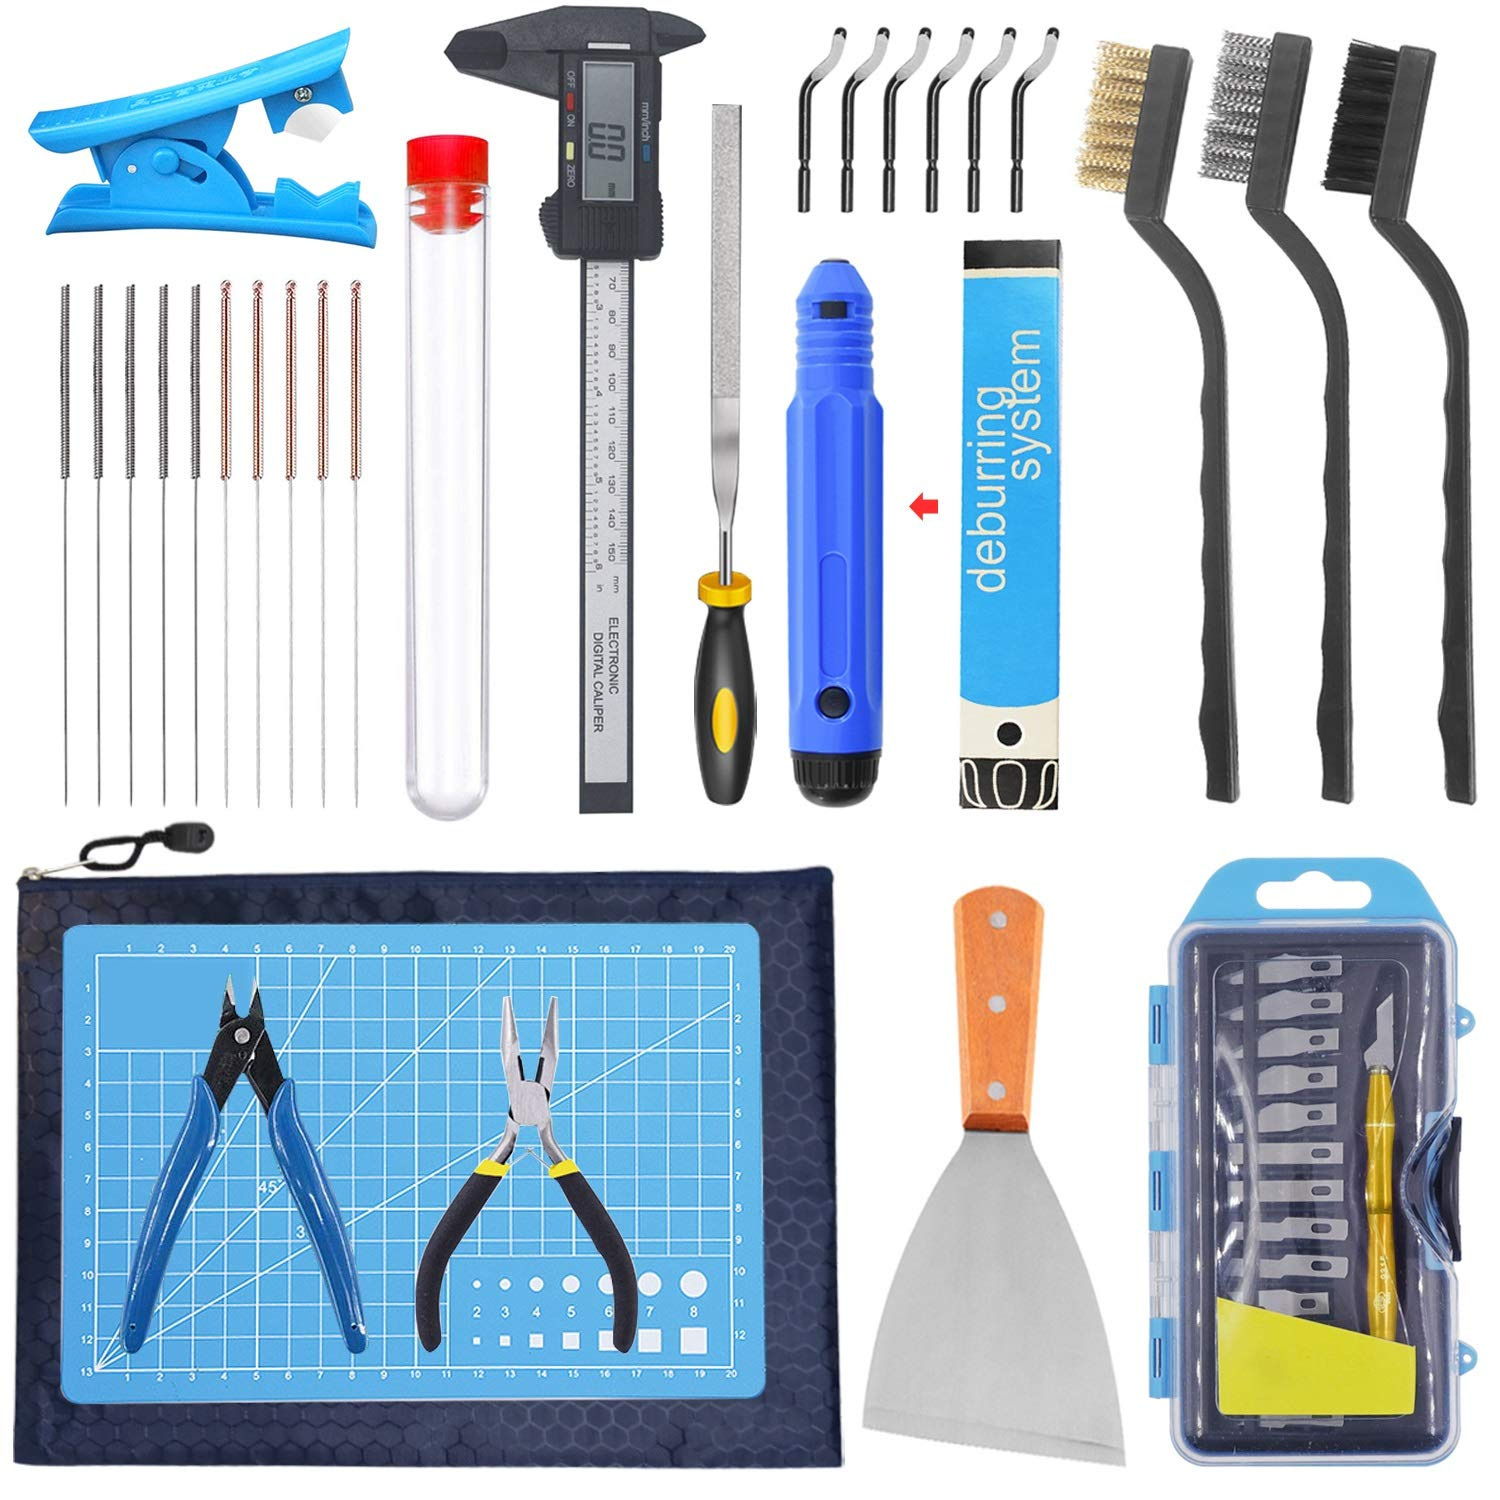 SOOWAY 3D PRINTER TOOL KIT INCLUDES REMOVAL CLEANING SET DEBURR CARVING KNIFE CUTTING MAT FOR MODEL CLEAN UP NEEDLE BRUSH FOR HOTEND CLEANING CALIPERS FULL SET OF 3D PRINT TOOLS